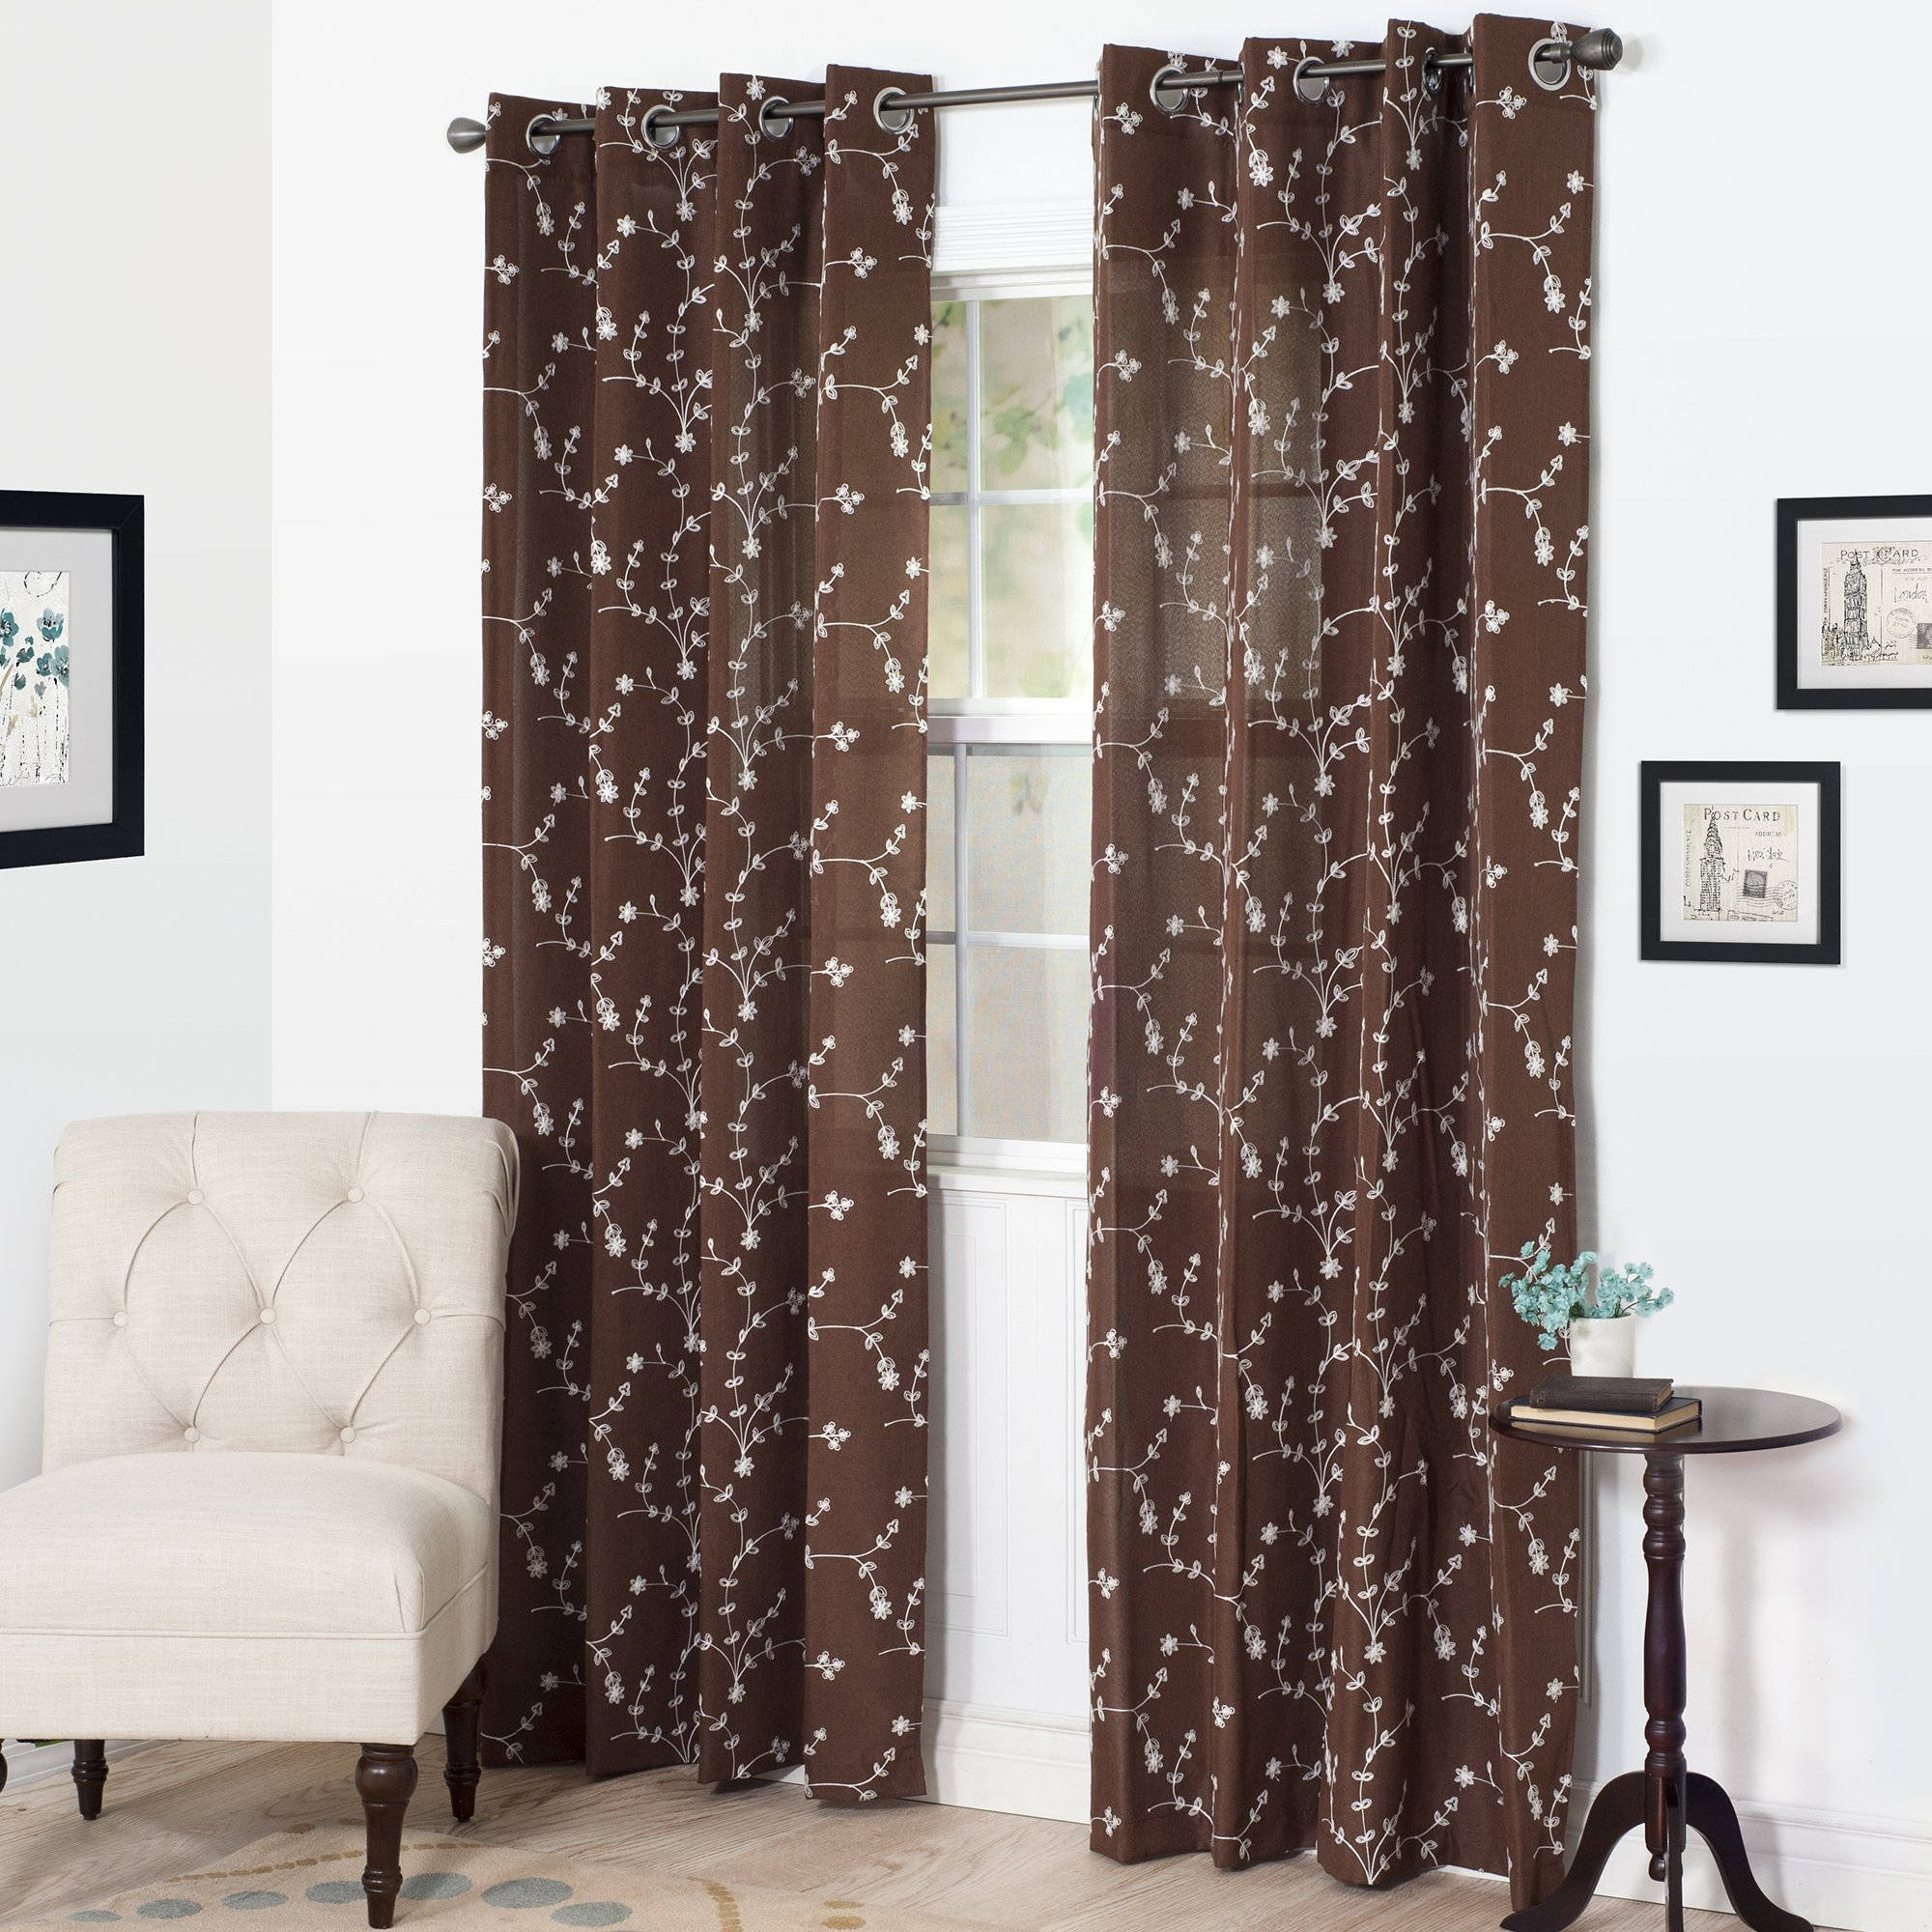 Better Homes And Gardens Embroidered Sheer Curtain Panel Walmart Regarding Curtain Sheers (View 9 of 25)